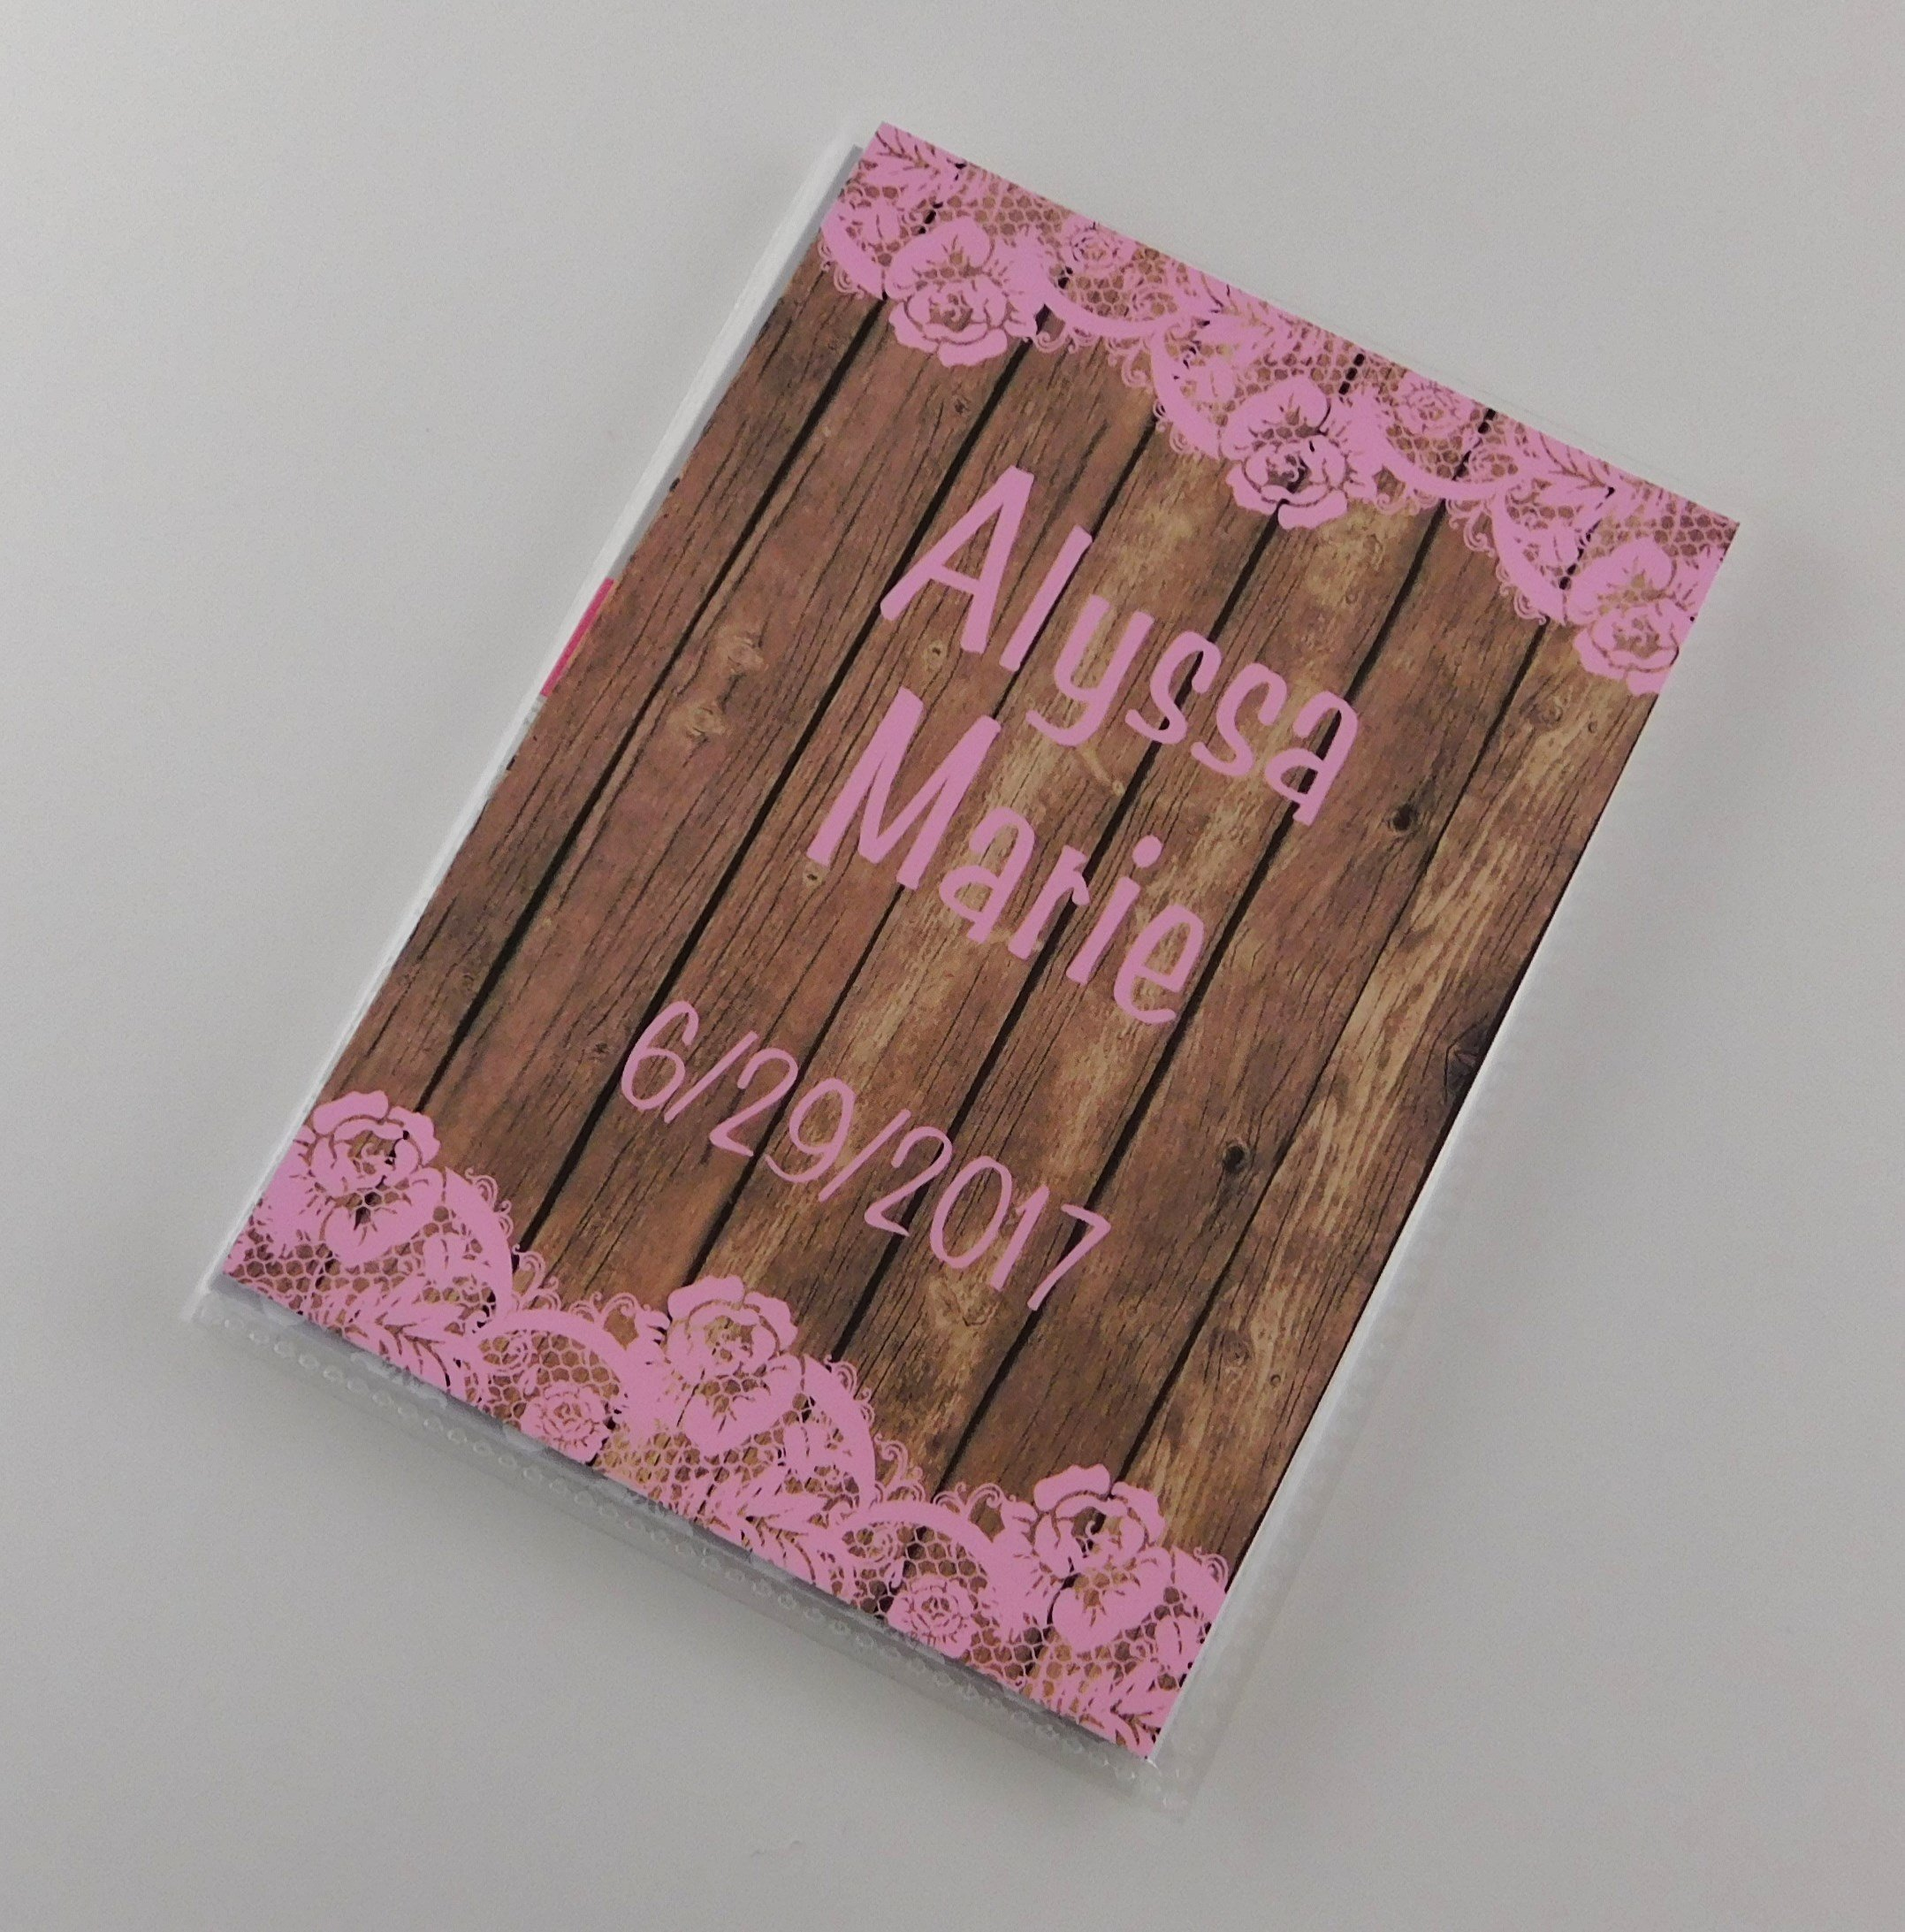 Photo Album Gift IA#833 PRINTED wood and lace NOT REAL Grandma's Brag Book 4x6 or 5x7 Pictures Newborn Shower Baby Girl Gift